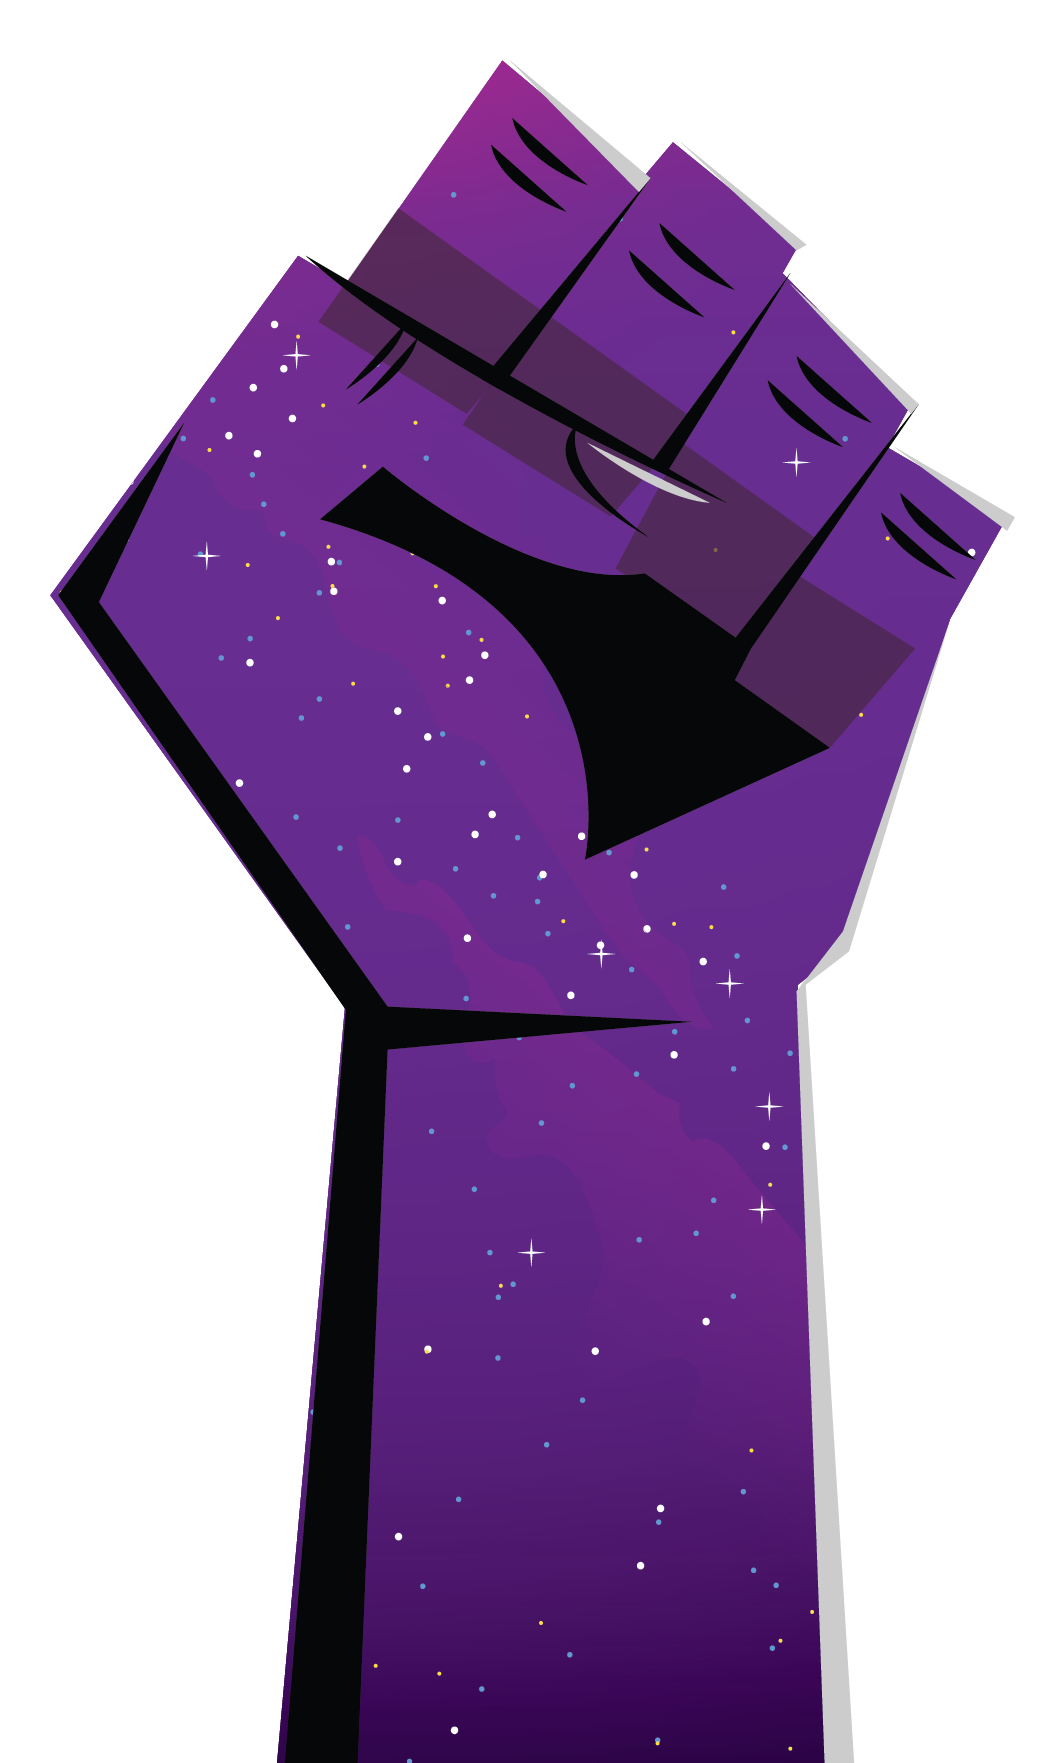 animated fist with purple starry sky